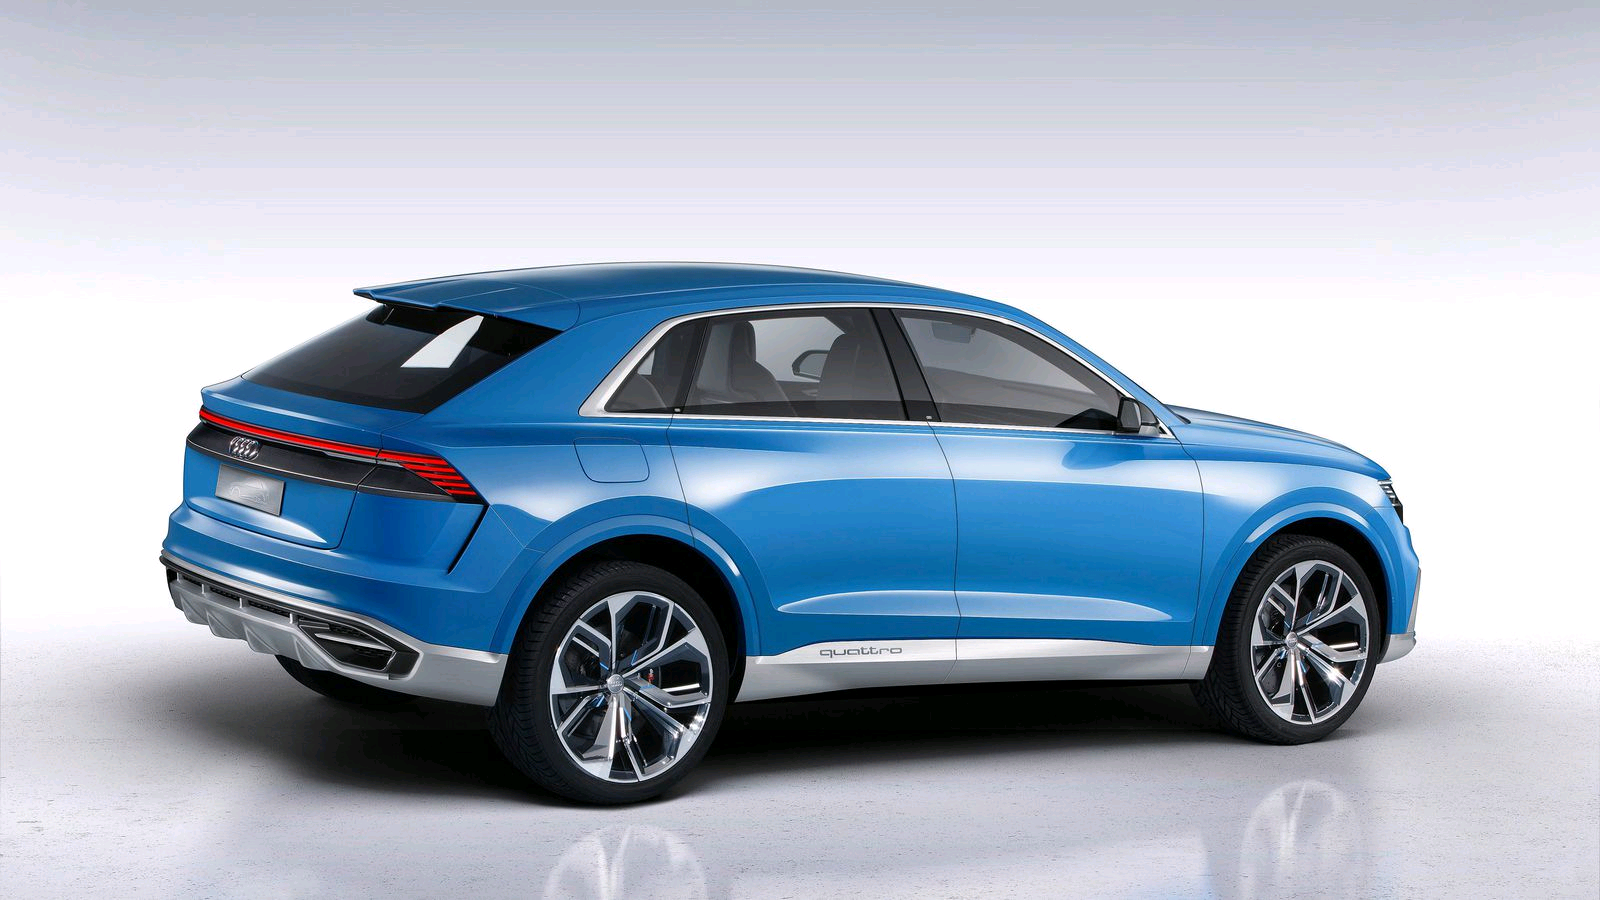 new audi q8 concept unveiled audi 39 s premium suv car news maxabout forum. Black Bedroom Furniture Sets. Home Design Ideas